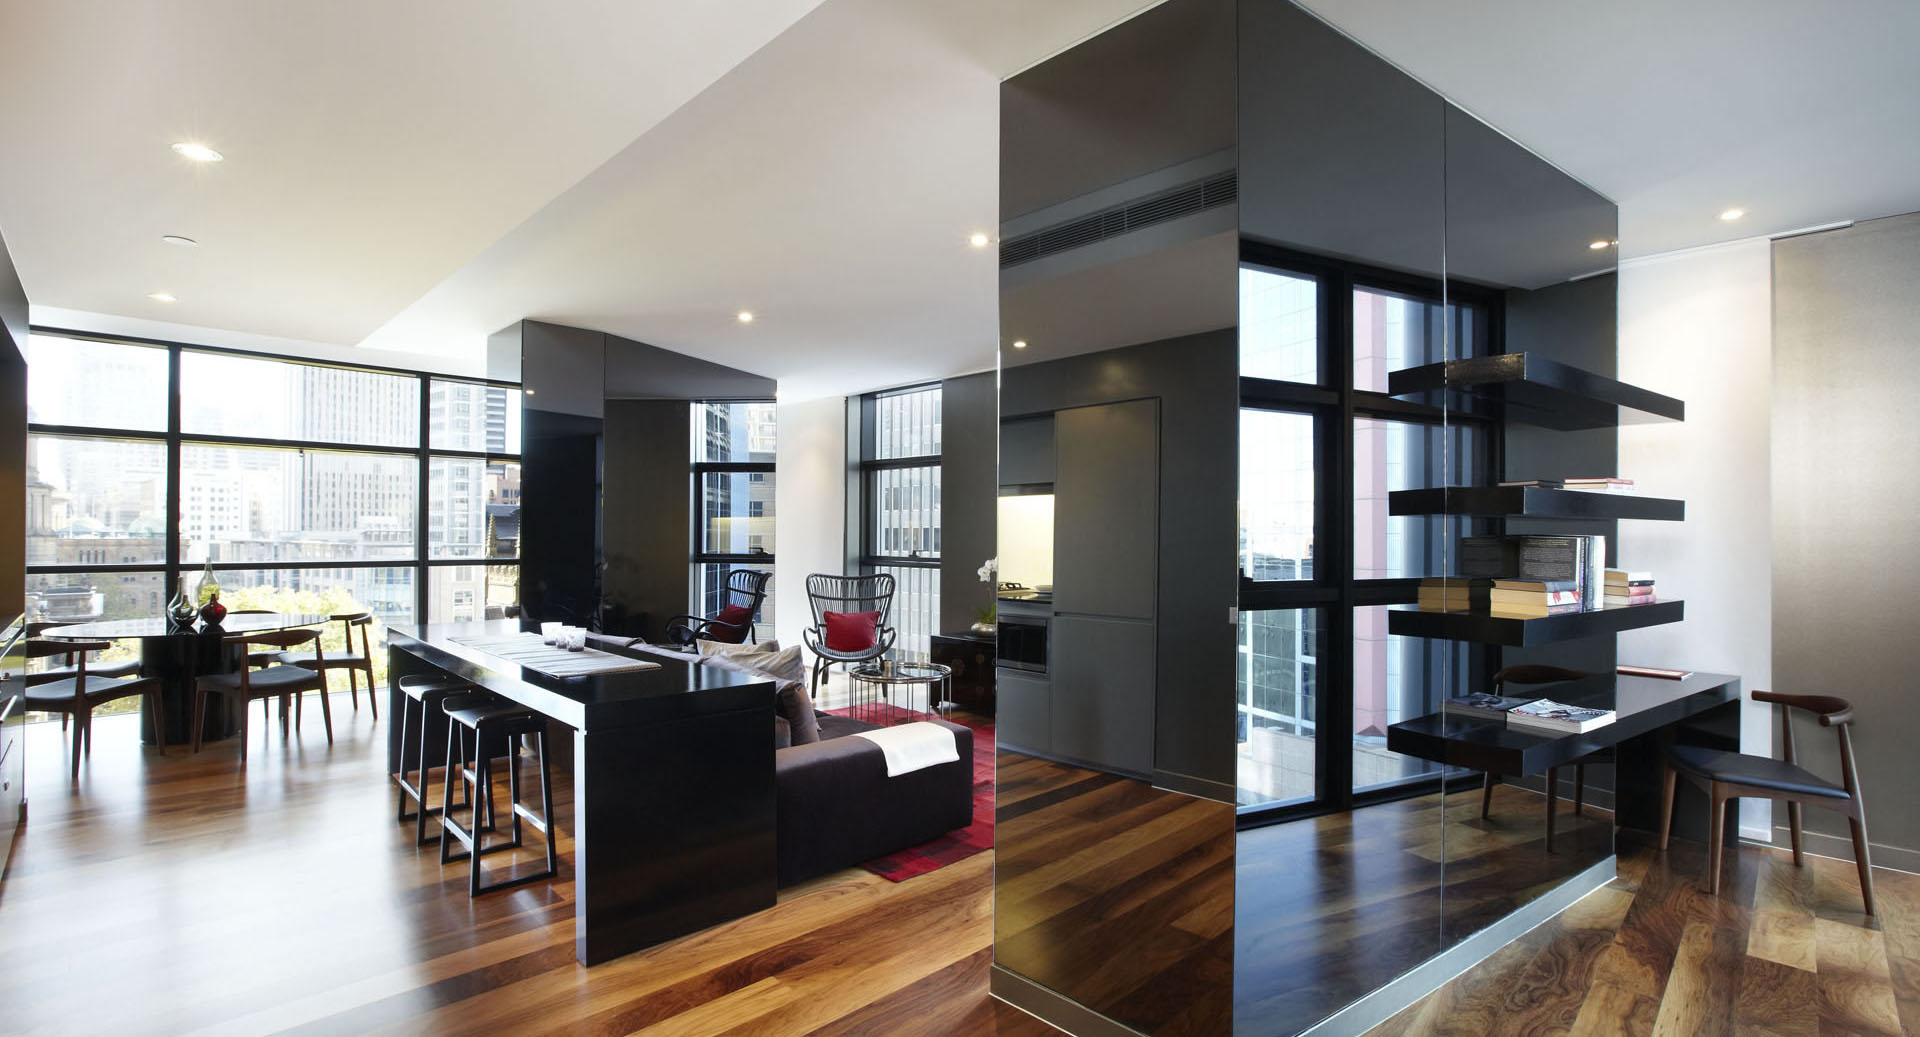 Contemporary apartment designs in sydney idesignarch for Studio room design